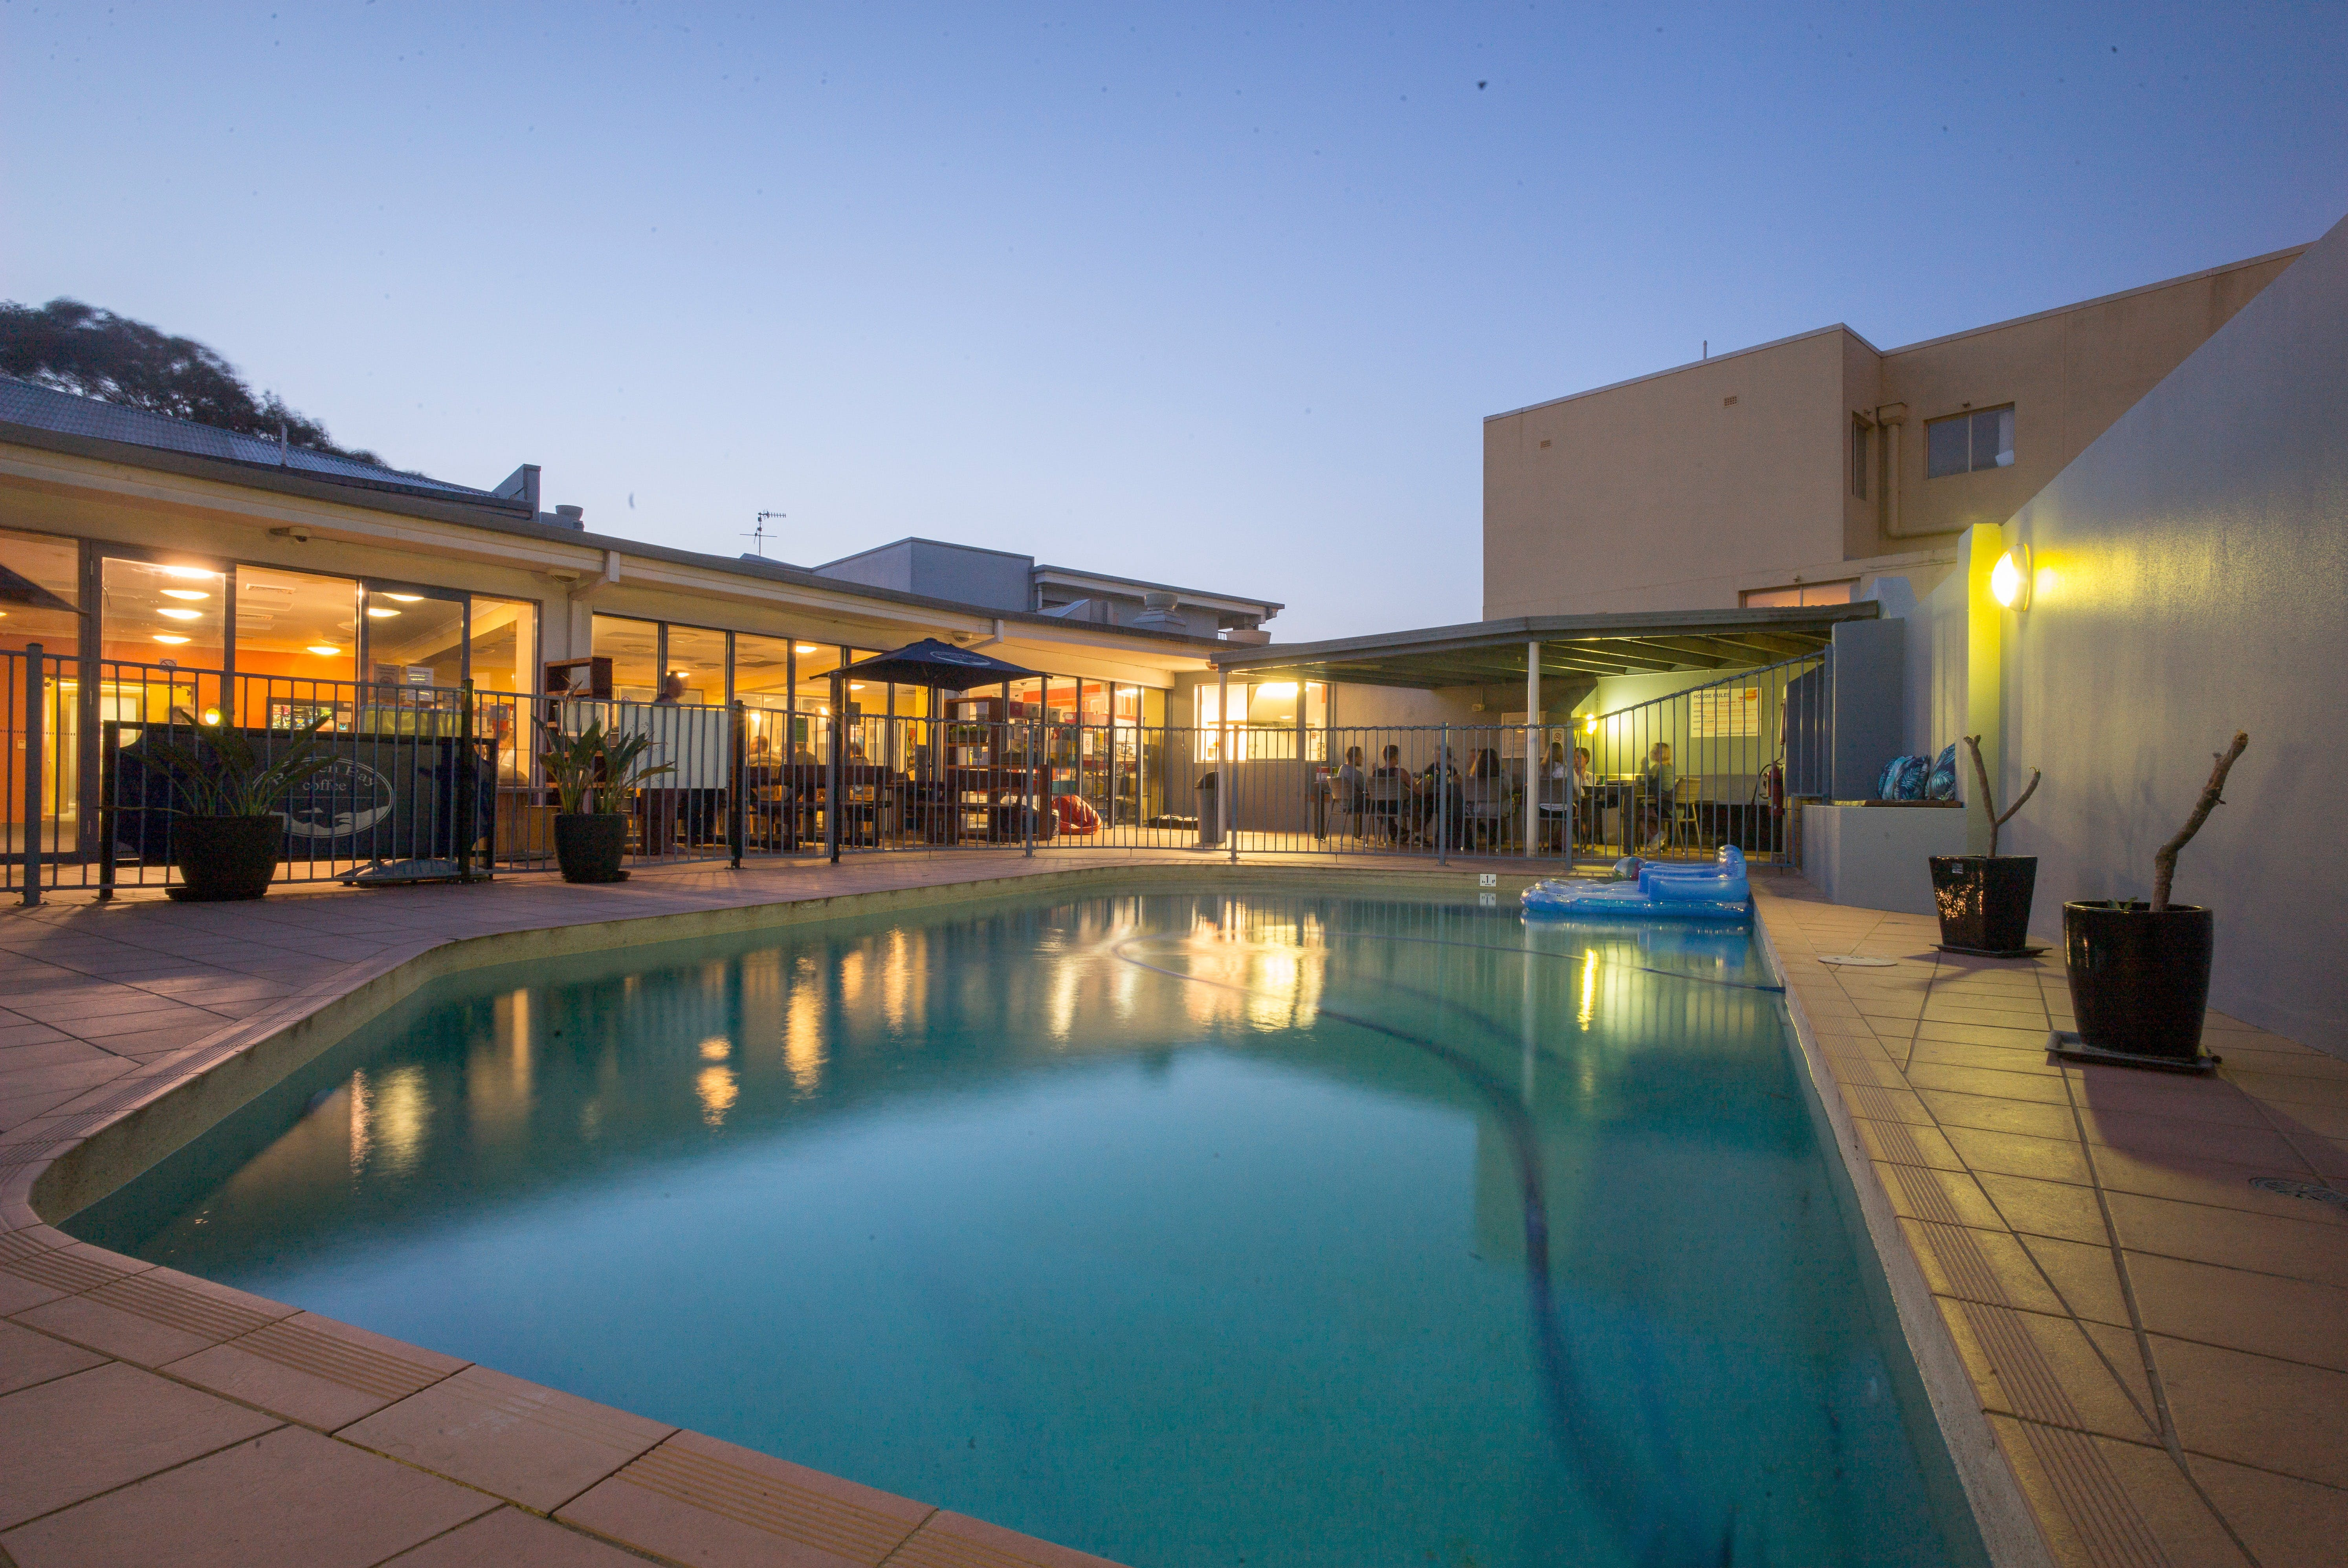 Sydney Beachouse YHA - Collaroy - Townsville Tourism